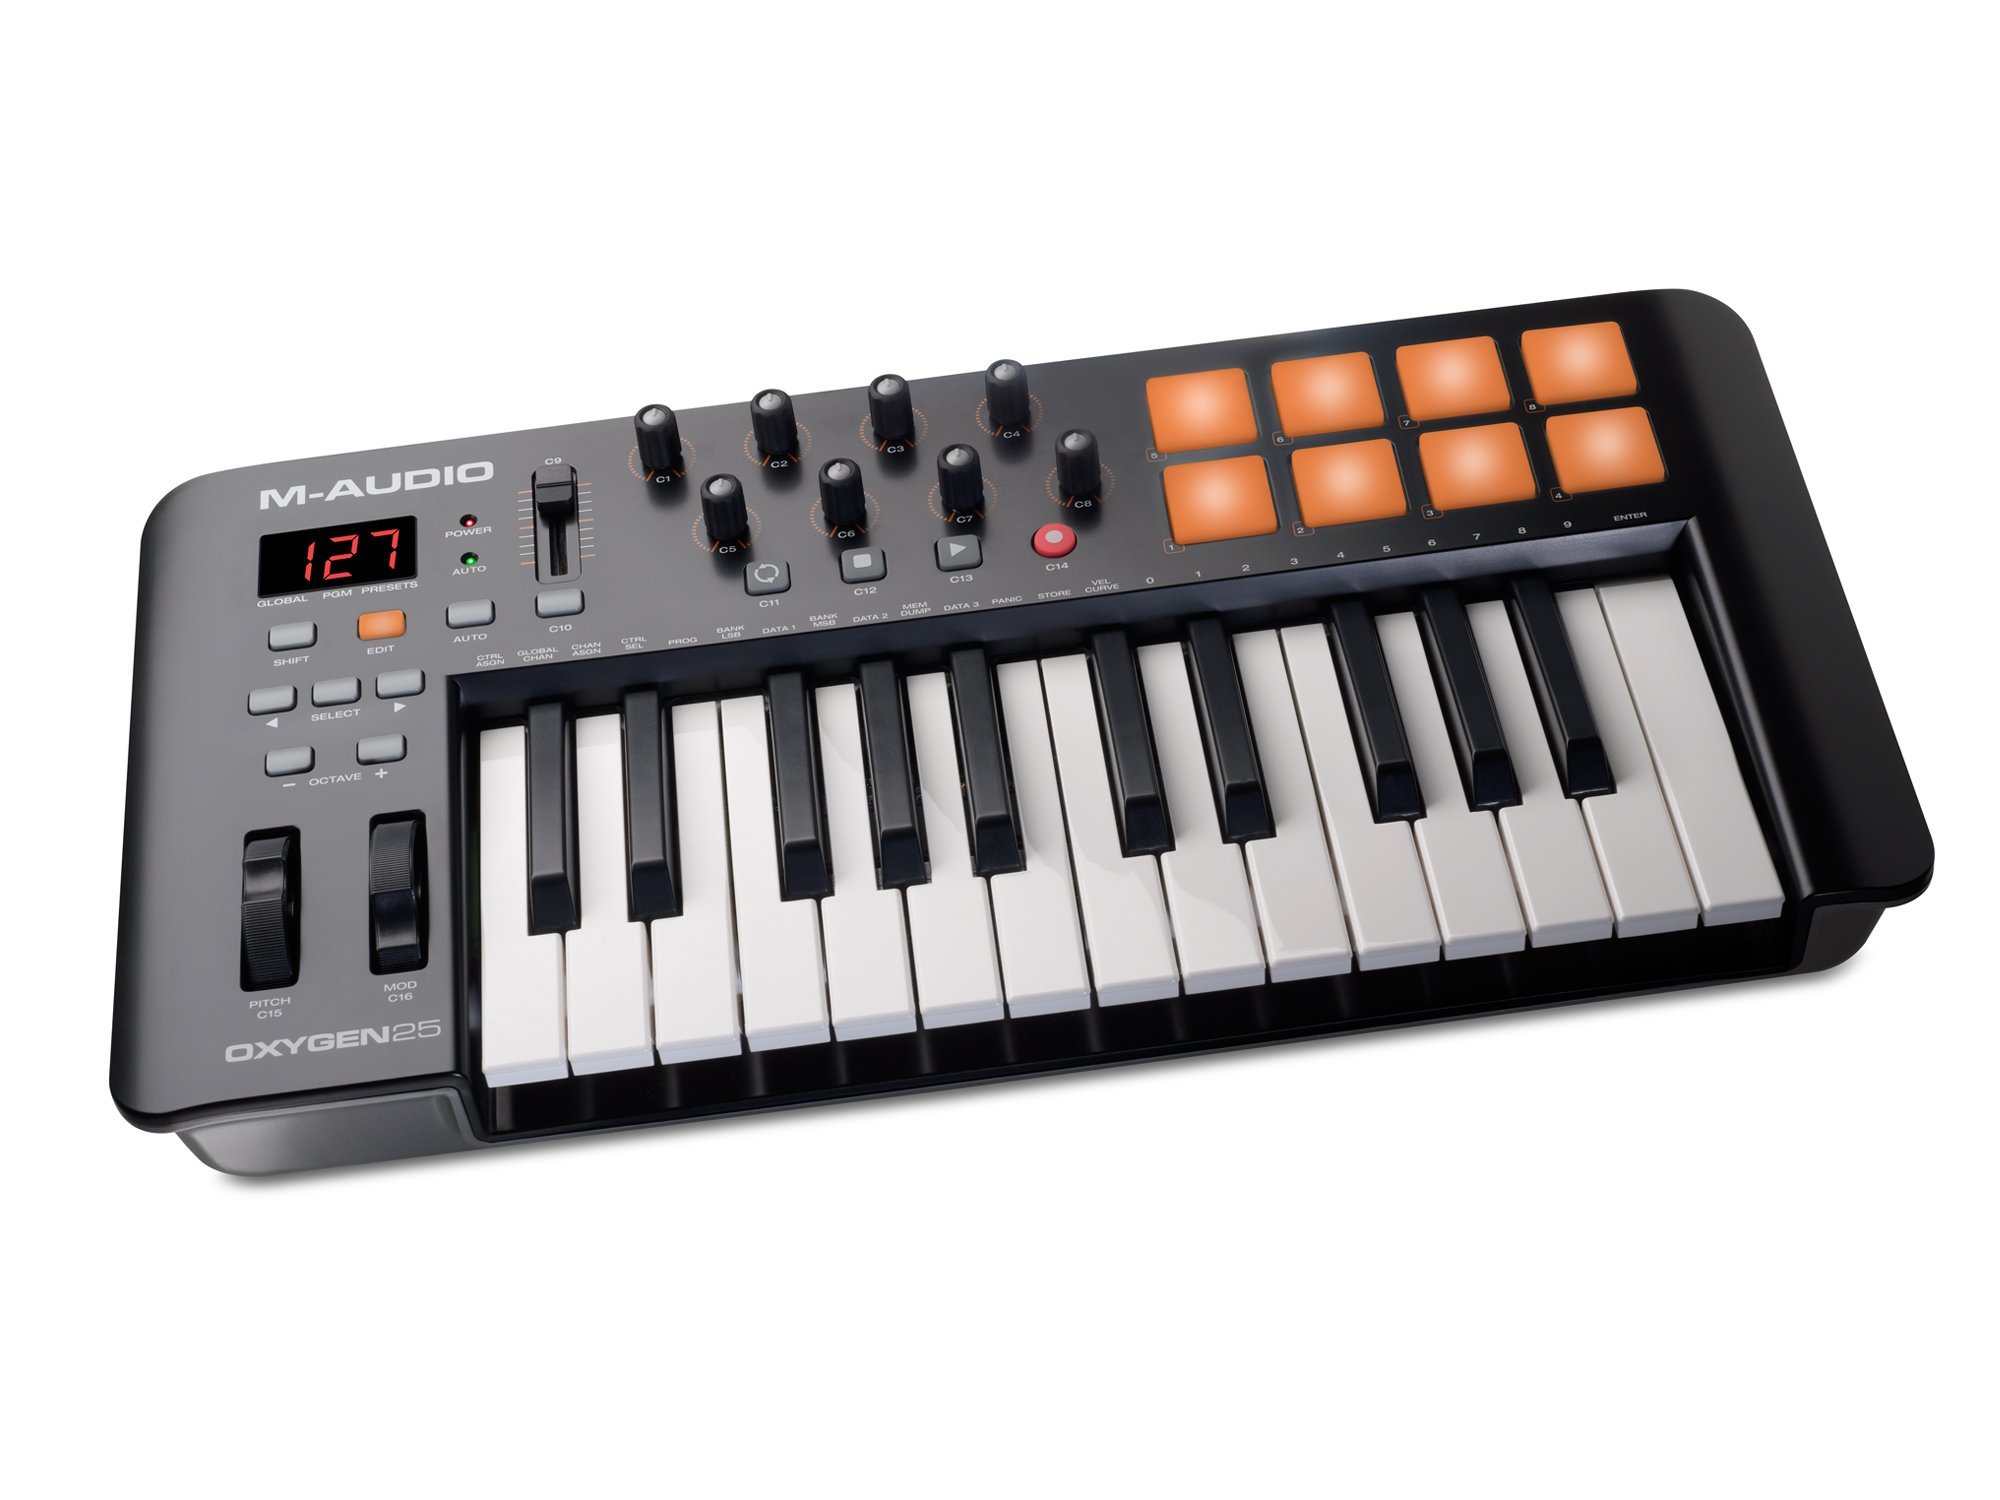 M-Audio Oxygen 25 IV | USB Keyboard and Pad MIDI Controller Featuring Pad/Velocity - Sensitive Keys by M-Audio